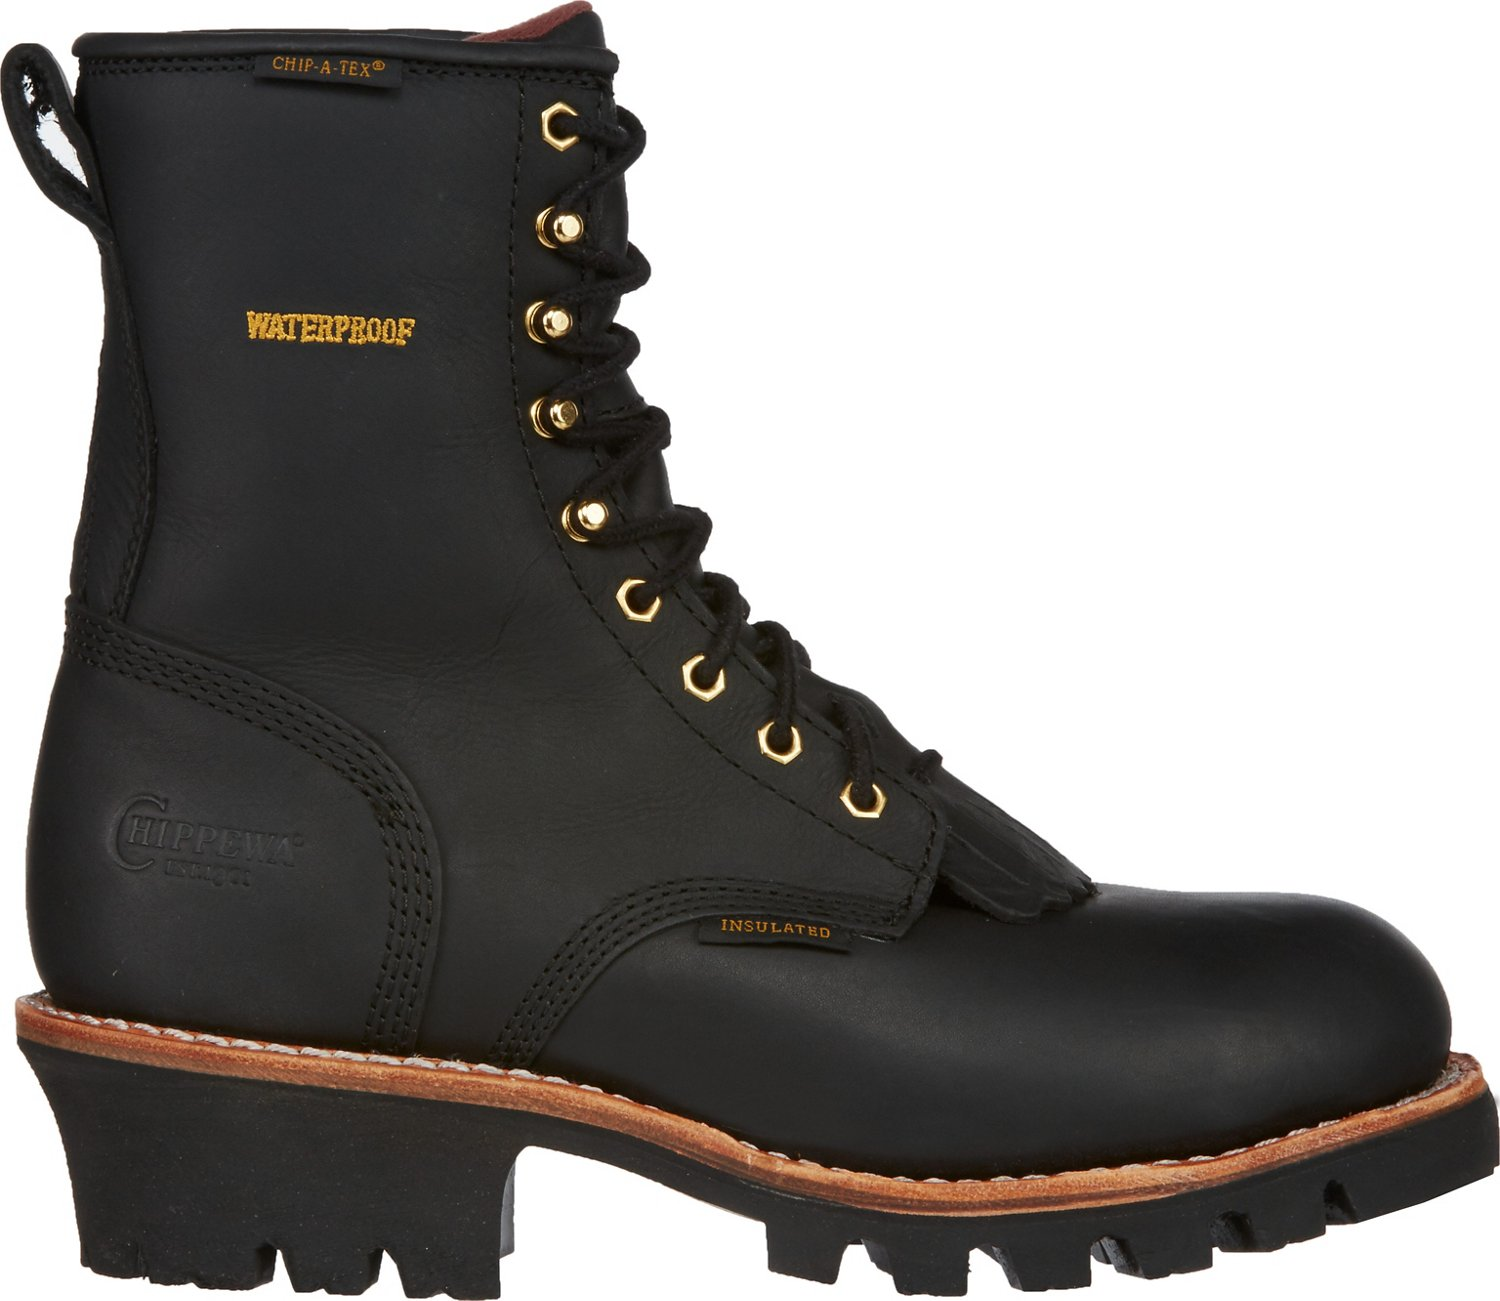 Display product reviews for Chippewa Boots Men s Insulated Waterproof Steel- Toe Logger Rugged Outdoors Boots 895a65c81